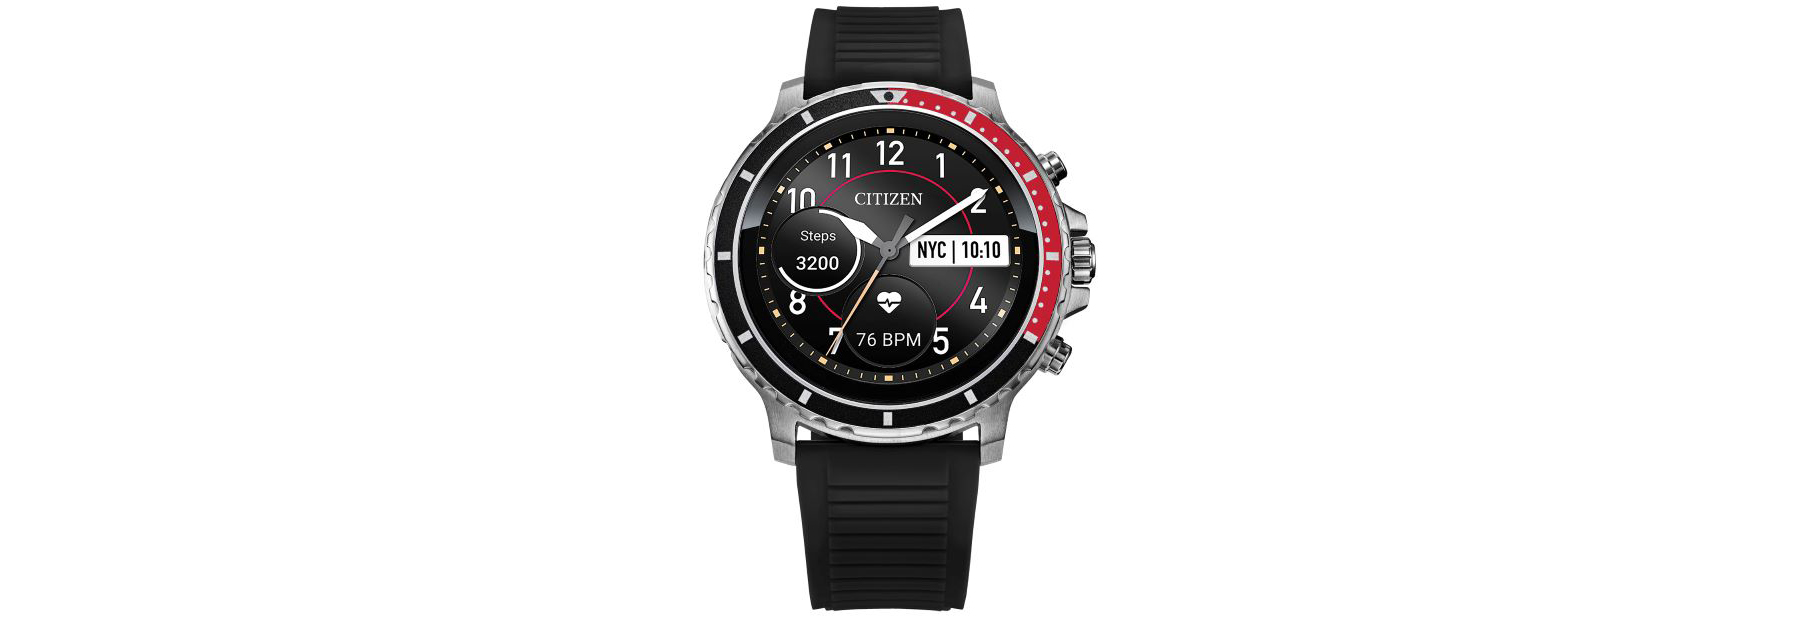 CZ Smart, Citizen's first full touchscreen smartwatch.